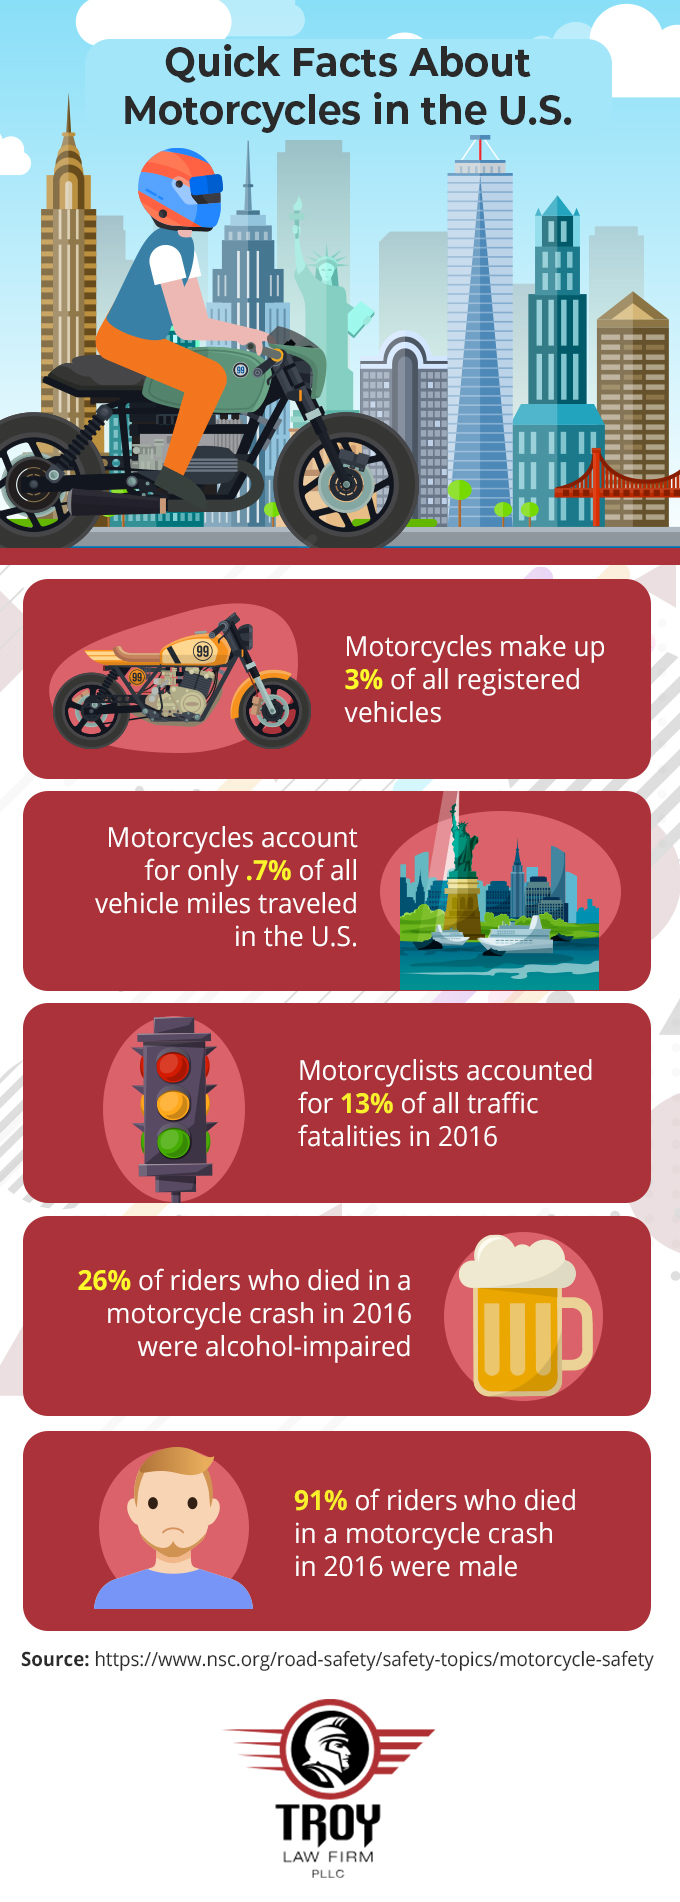 Infographic showing motorcycle statistics for the United States